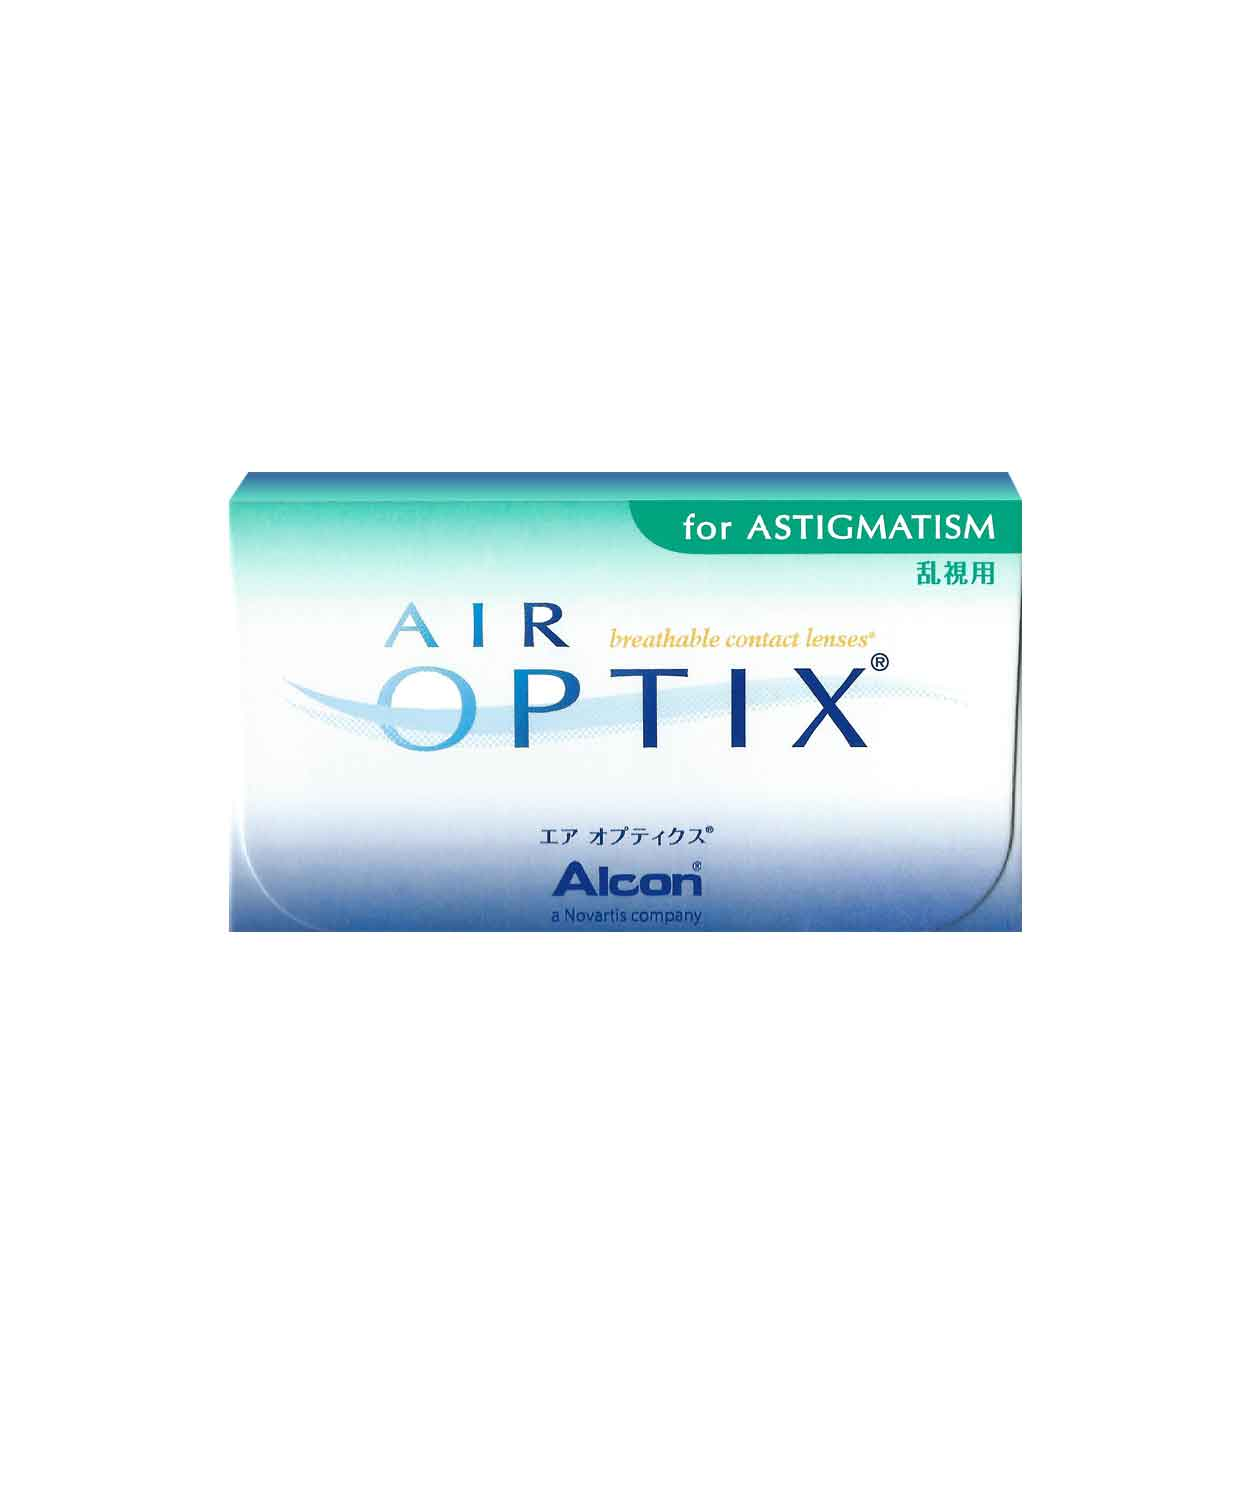 air optix for astigmatism contact lens malaysia. Black Bedroom Furniture Sets. Home Design Ideas